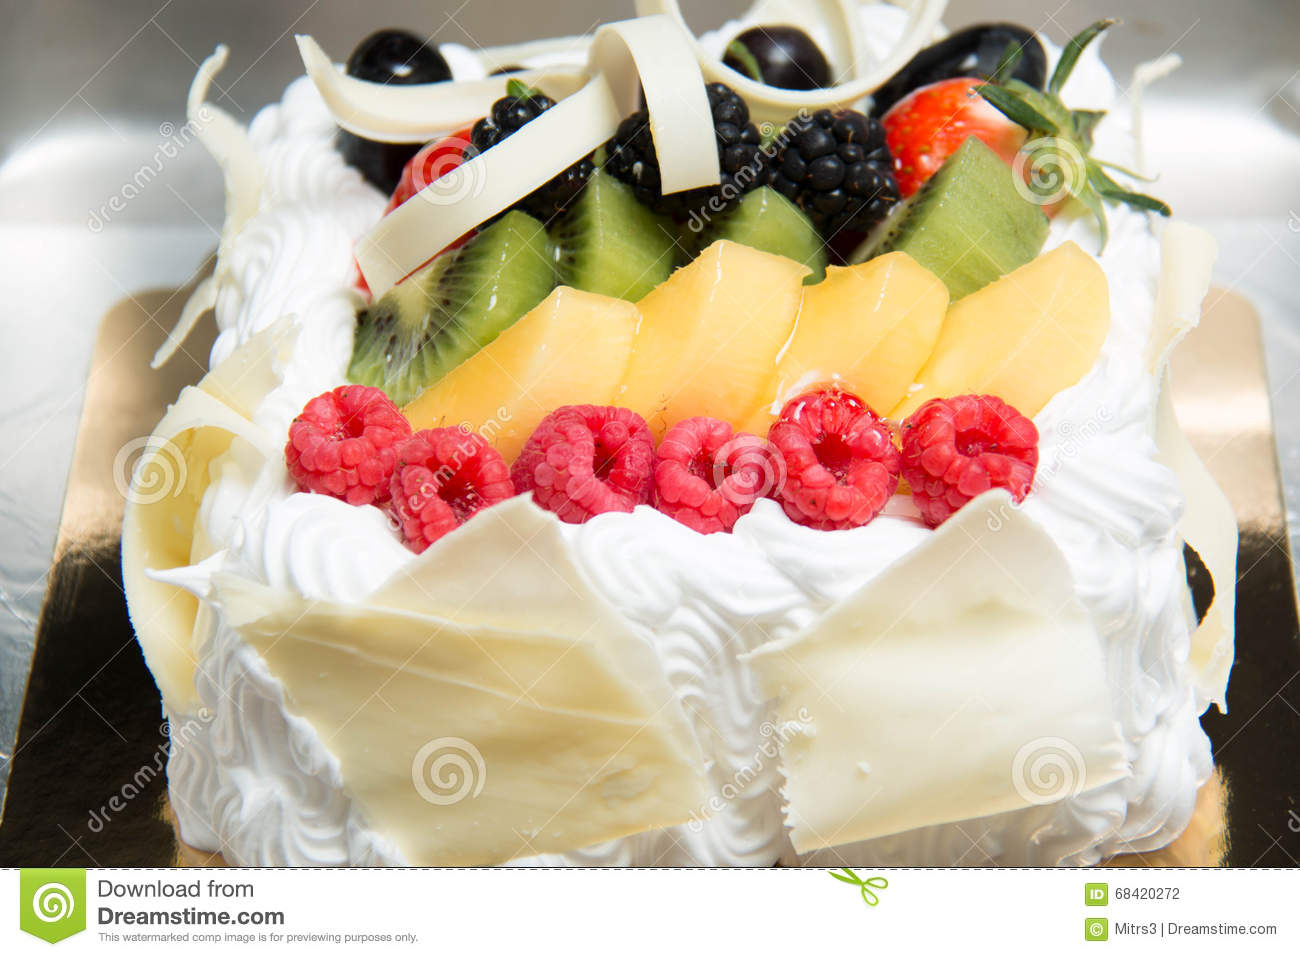 Fresh Fruit Flan Cake Stock Photo - Image: 68420272